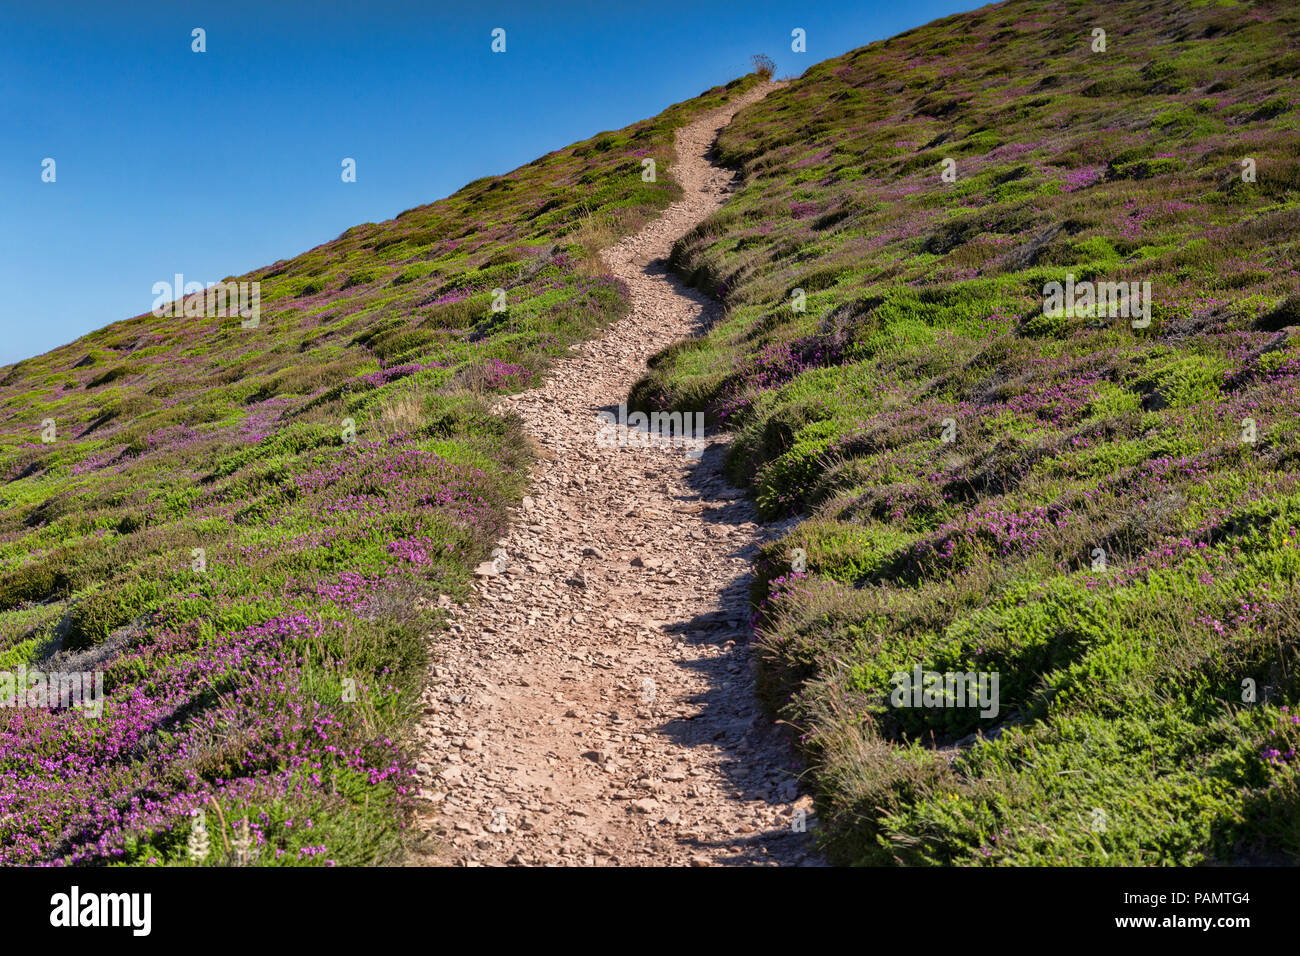 The South West Coast Path crossing heather covered moorland near St Agnes Head, Cornwall, UK. - Stock Image